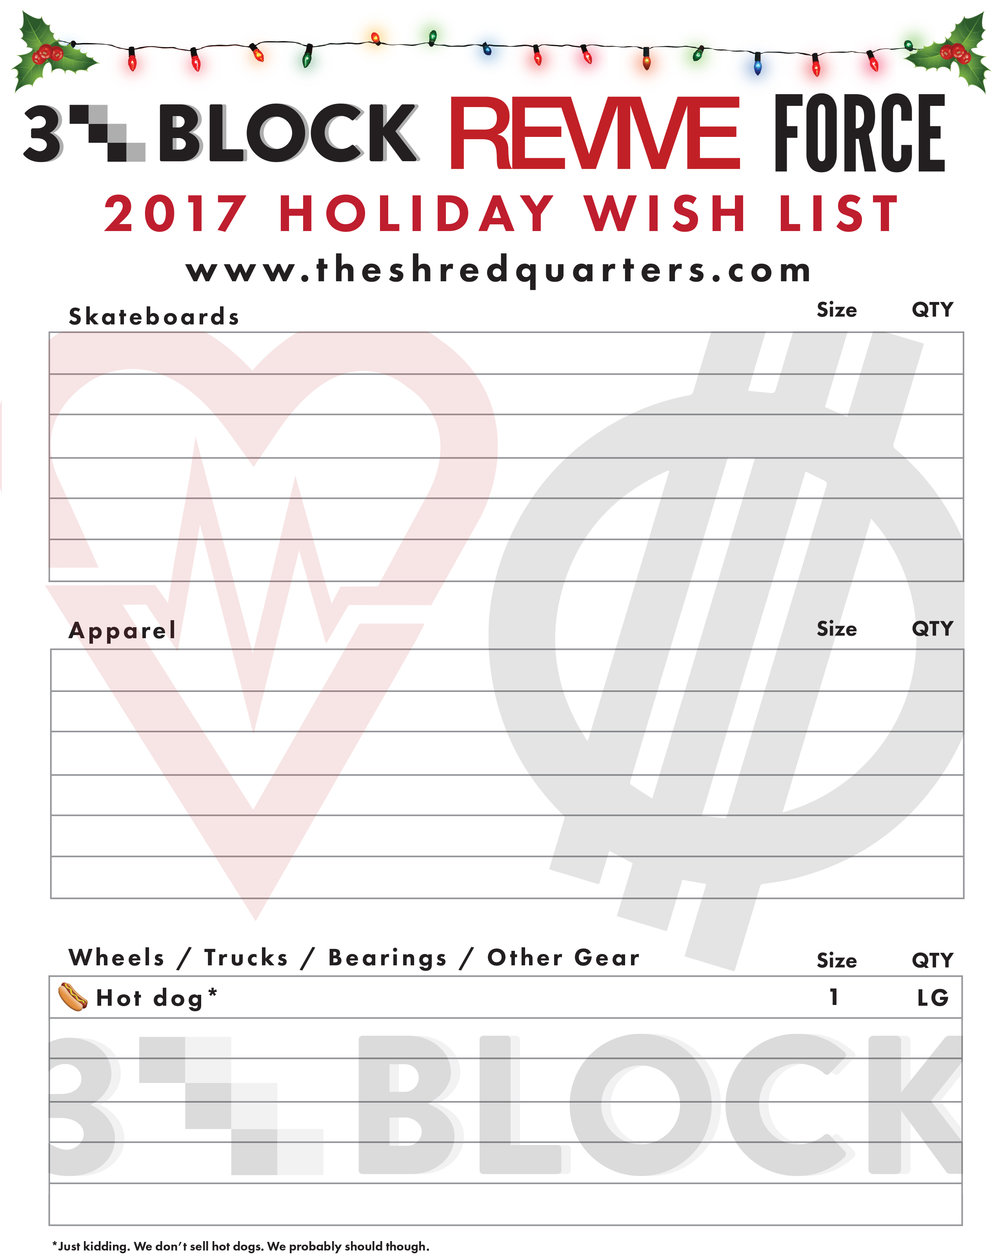 2017 holiday wish list.jpg